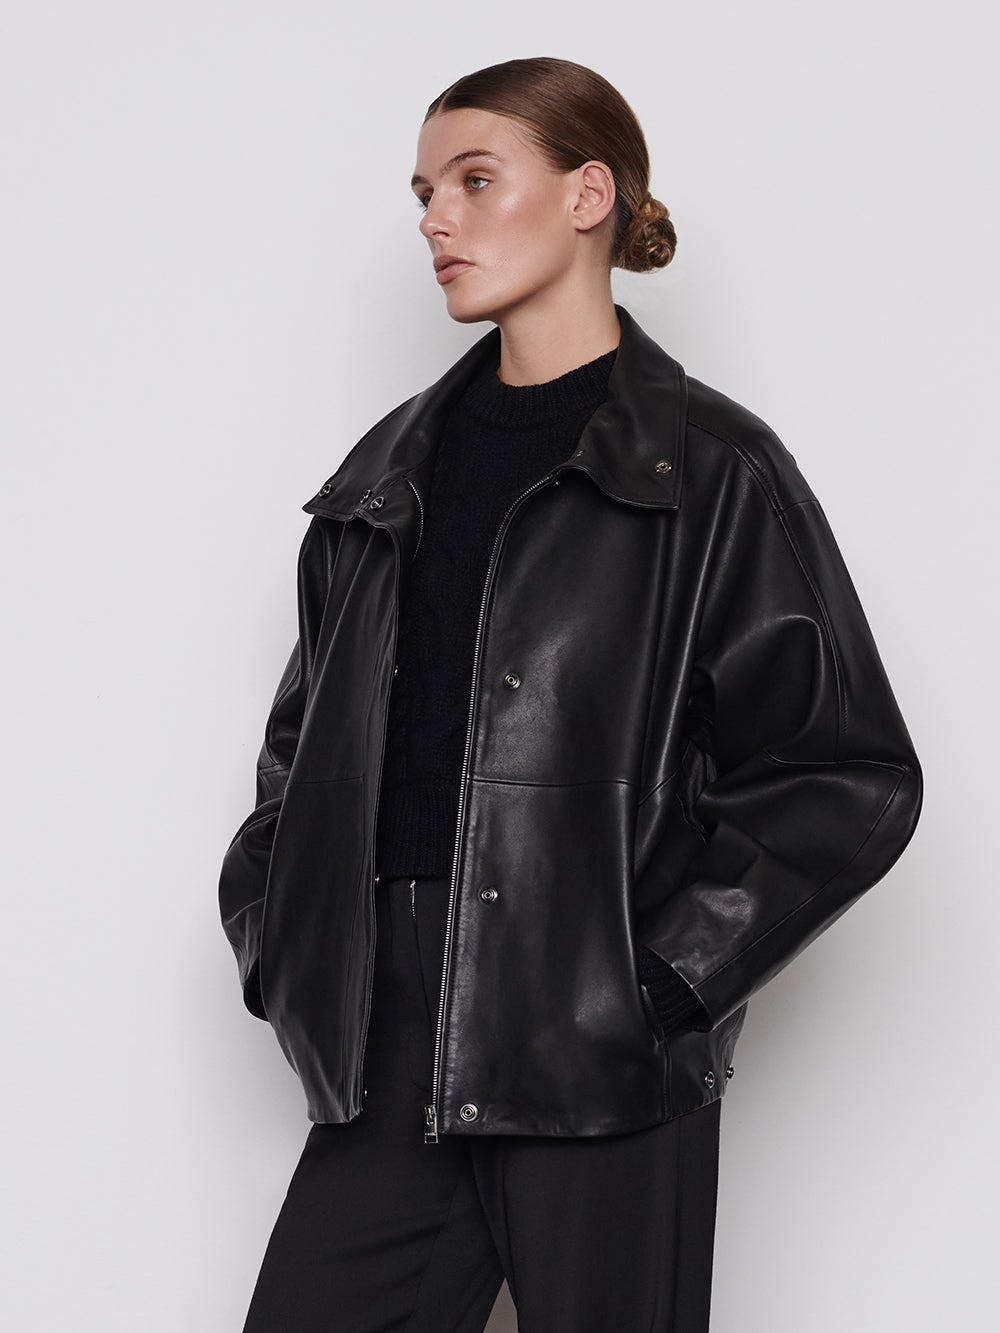 jacket side view